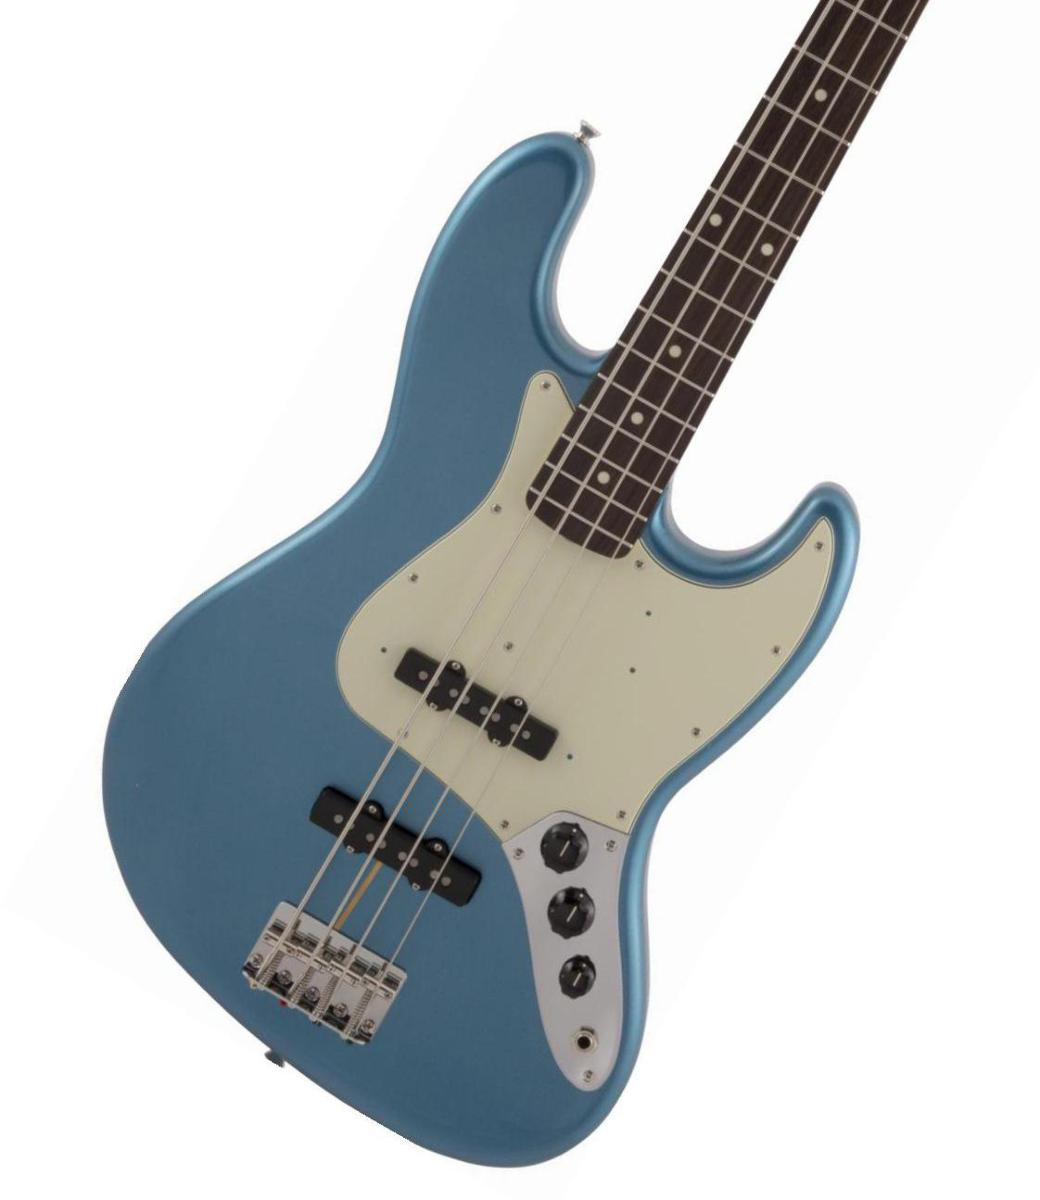 Fender / Made in Japan Traditional 60s Jazz Bass Rosewood Fingerboard Lake Placid Blue【2020 NEW MODEL】《純正ケーブル&ピック1ダースプレゼント!/+661944400》